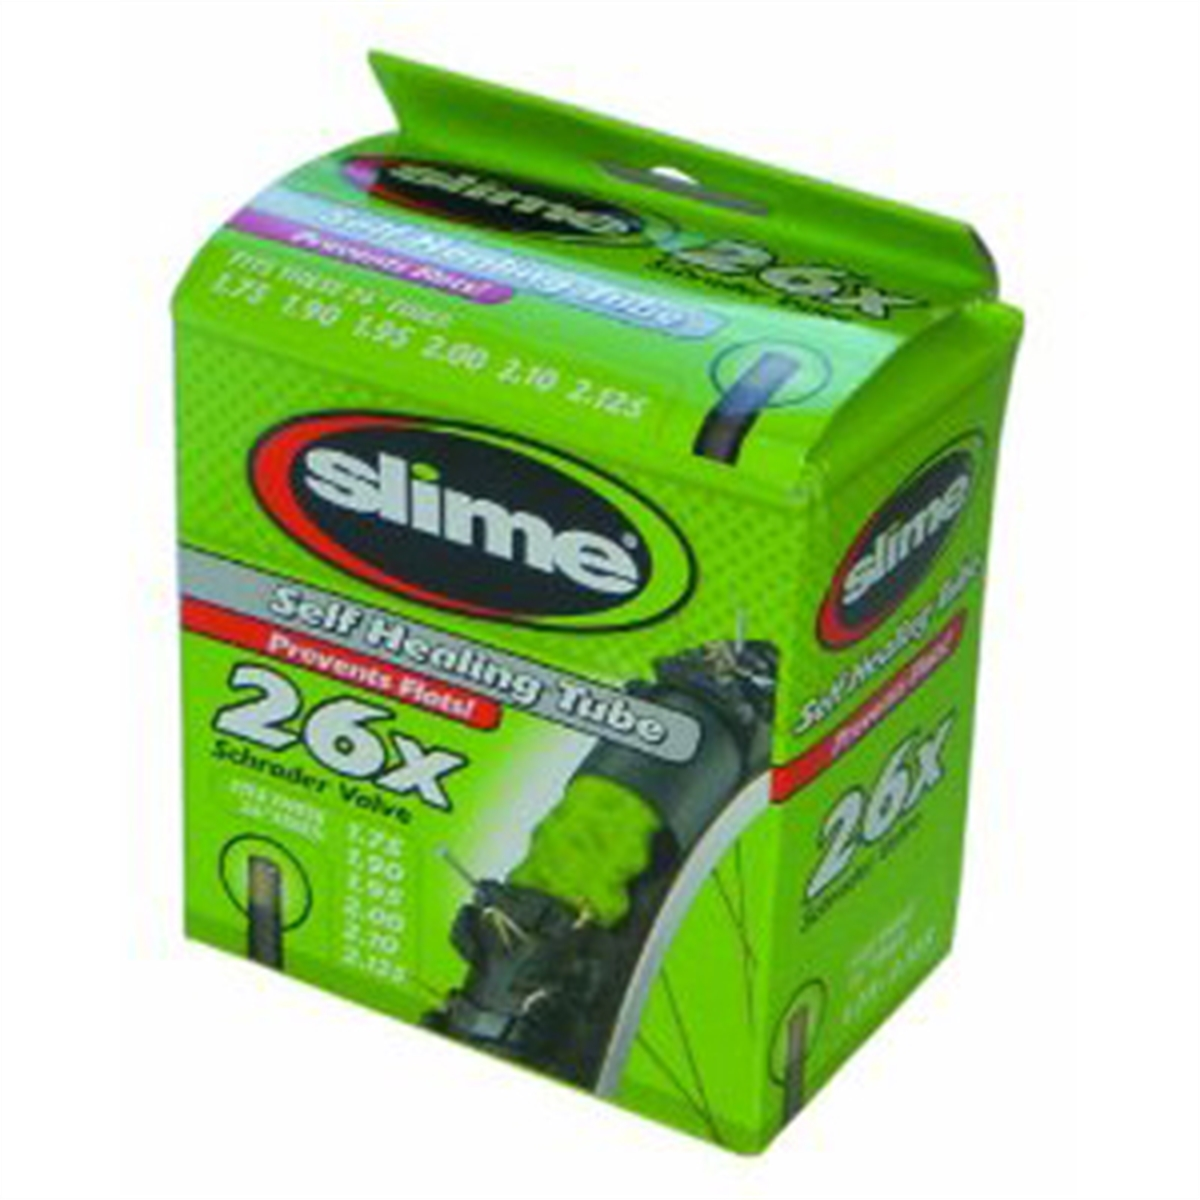 "Slime Self-Sealing Smart Replacement Bike/Bicycle Inner Tube, Schrader 26""x1.75-2.125"" - 30045"